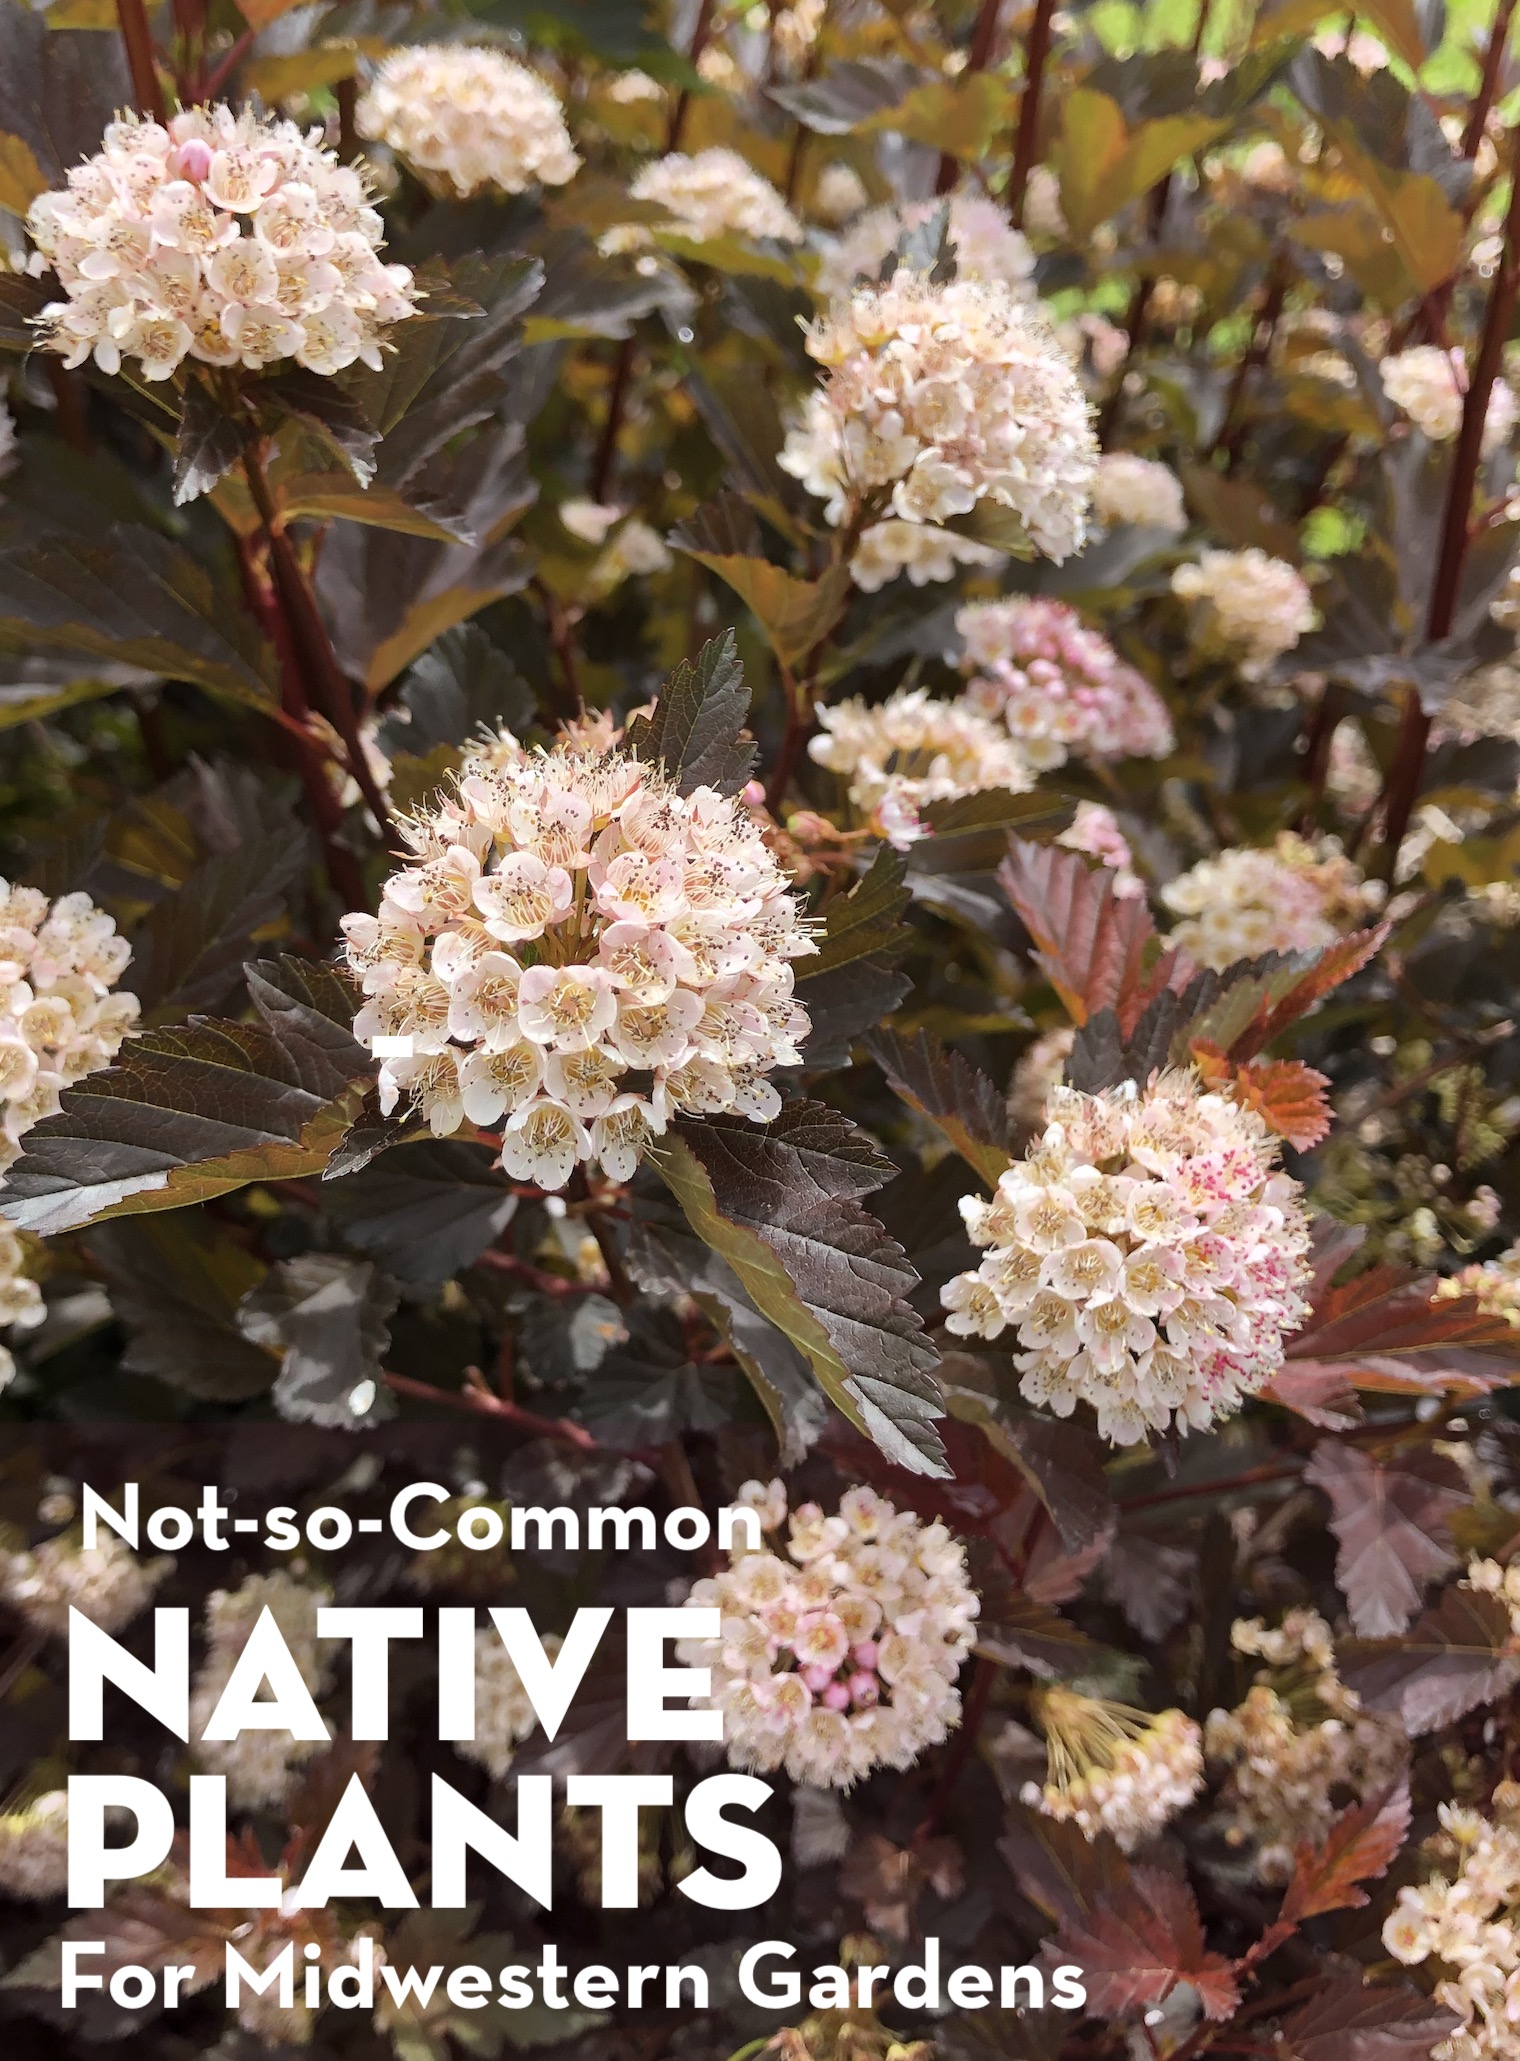 Not-So-Common Native Plants for Midwestern Gardens